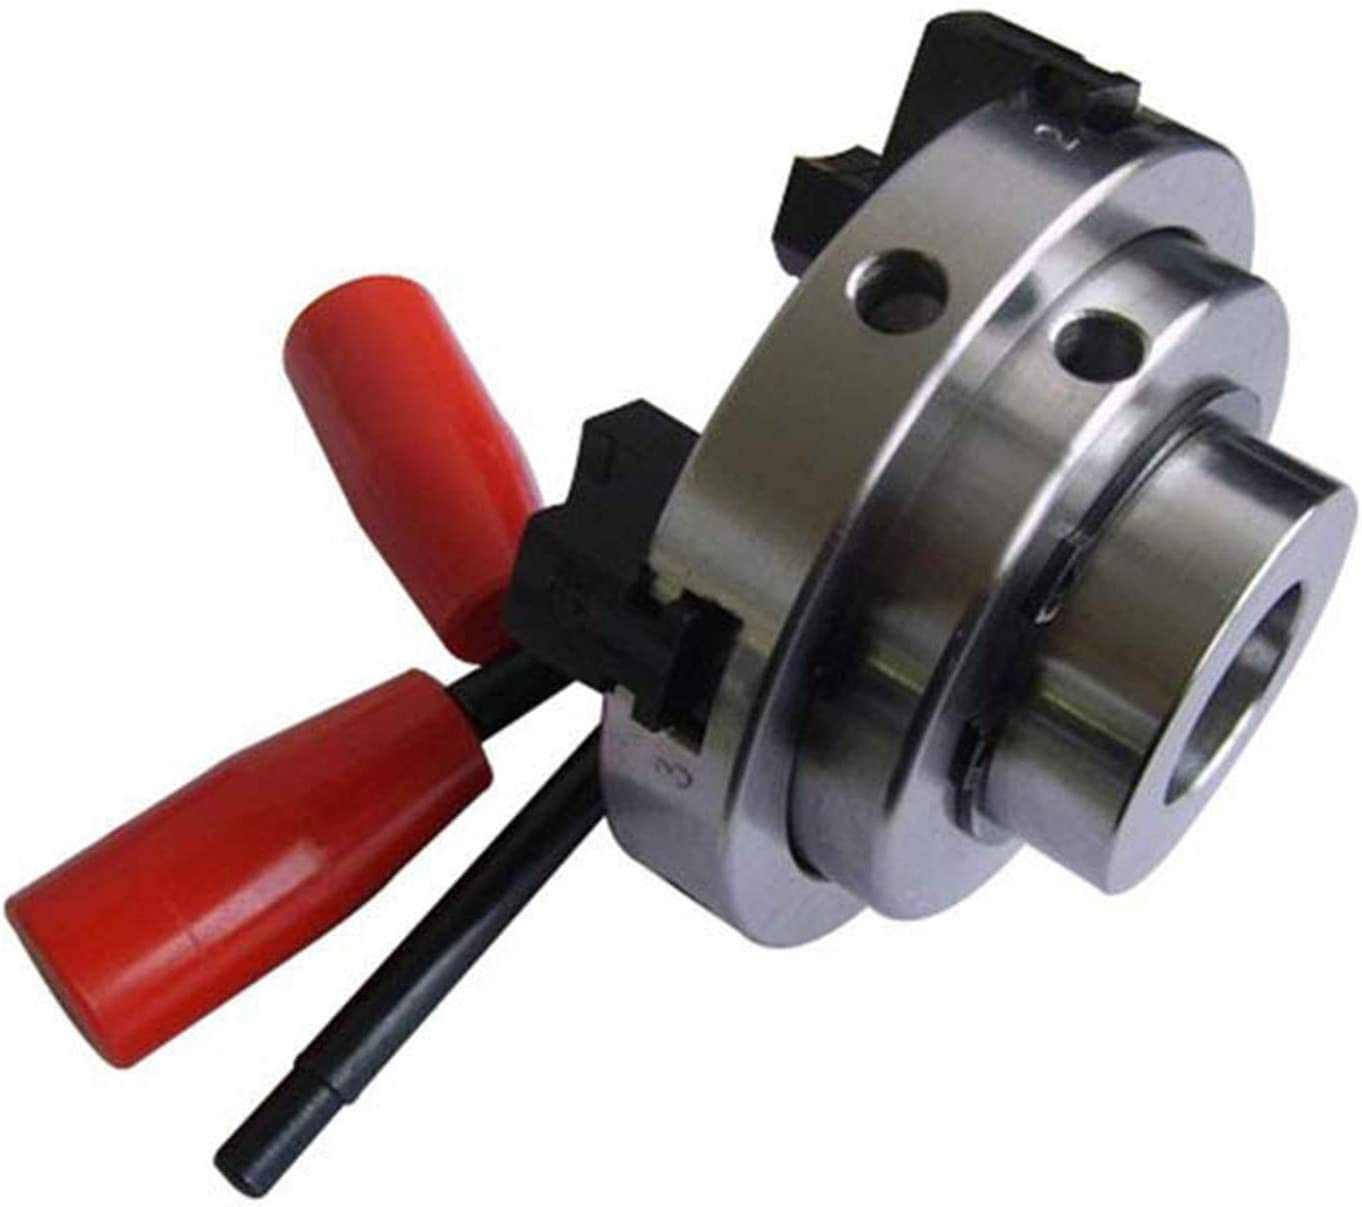 N B Selling and selling Four-jaw Popular product Linkage Lathe Chuck 1 Wooden